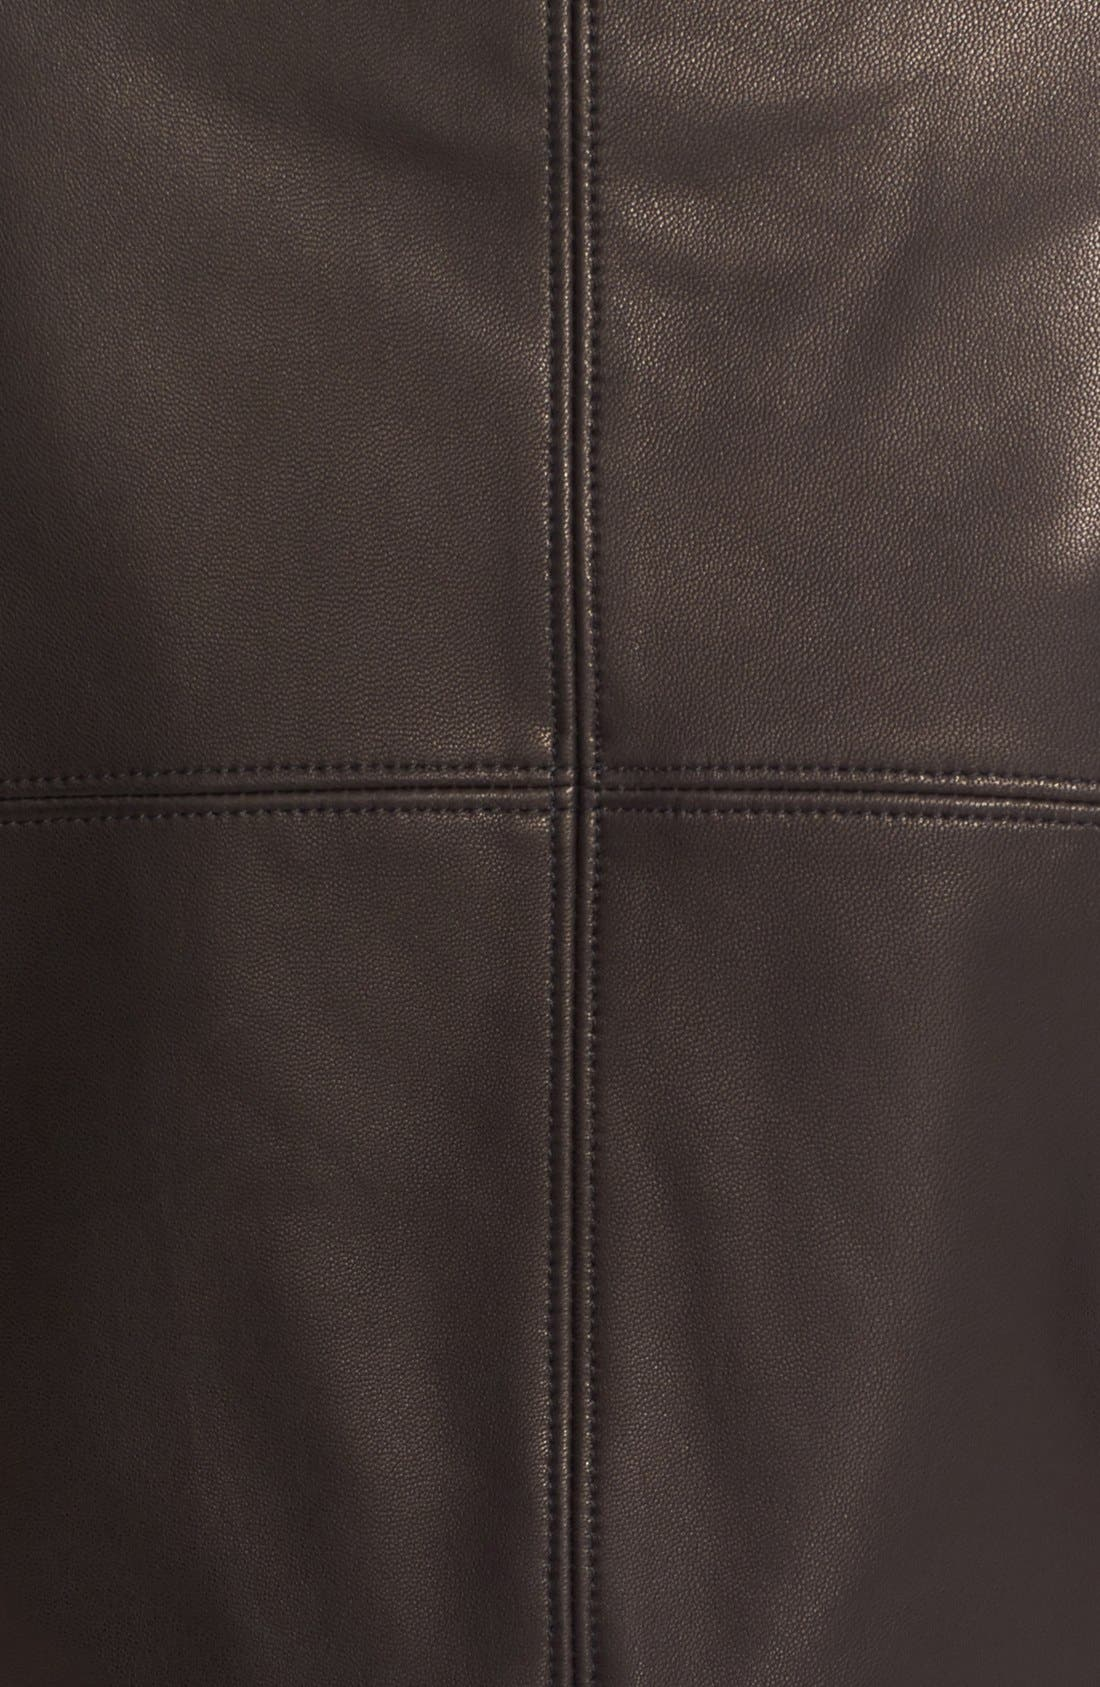 'Gimmy' Crop Lambskin Leather Jacket,                             Alternate thumbnail 4, color,                             006